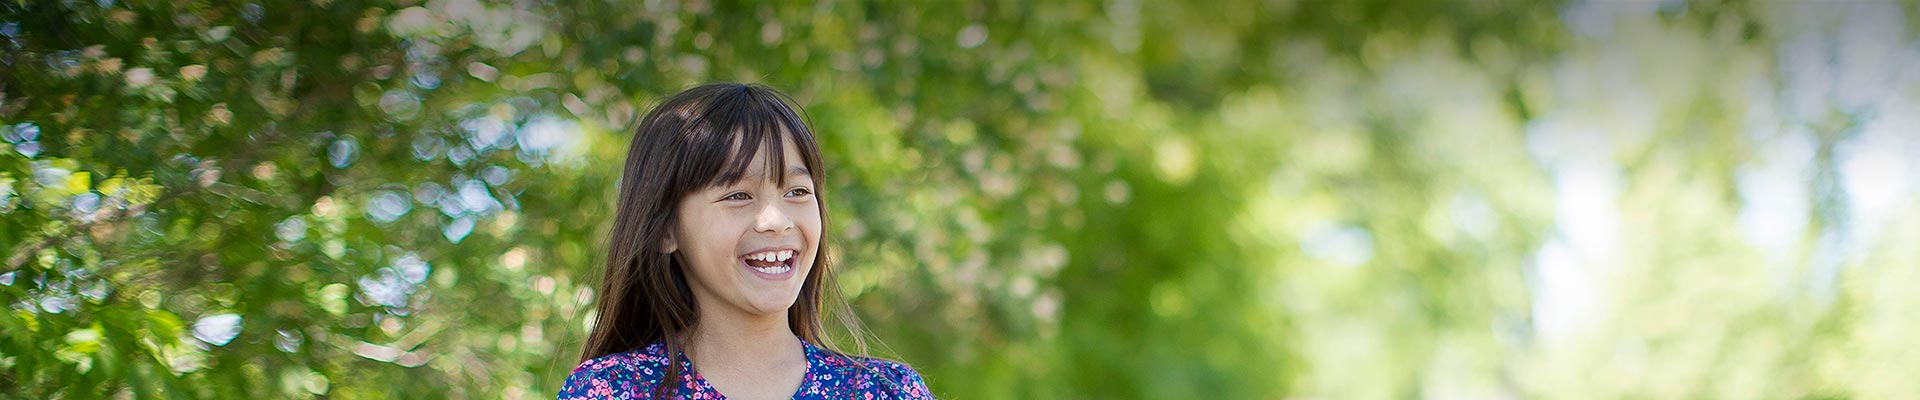 Smiling girl Prestwich Orthodontics in Minot, ND